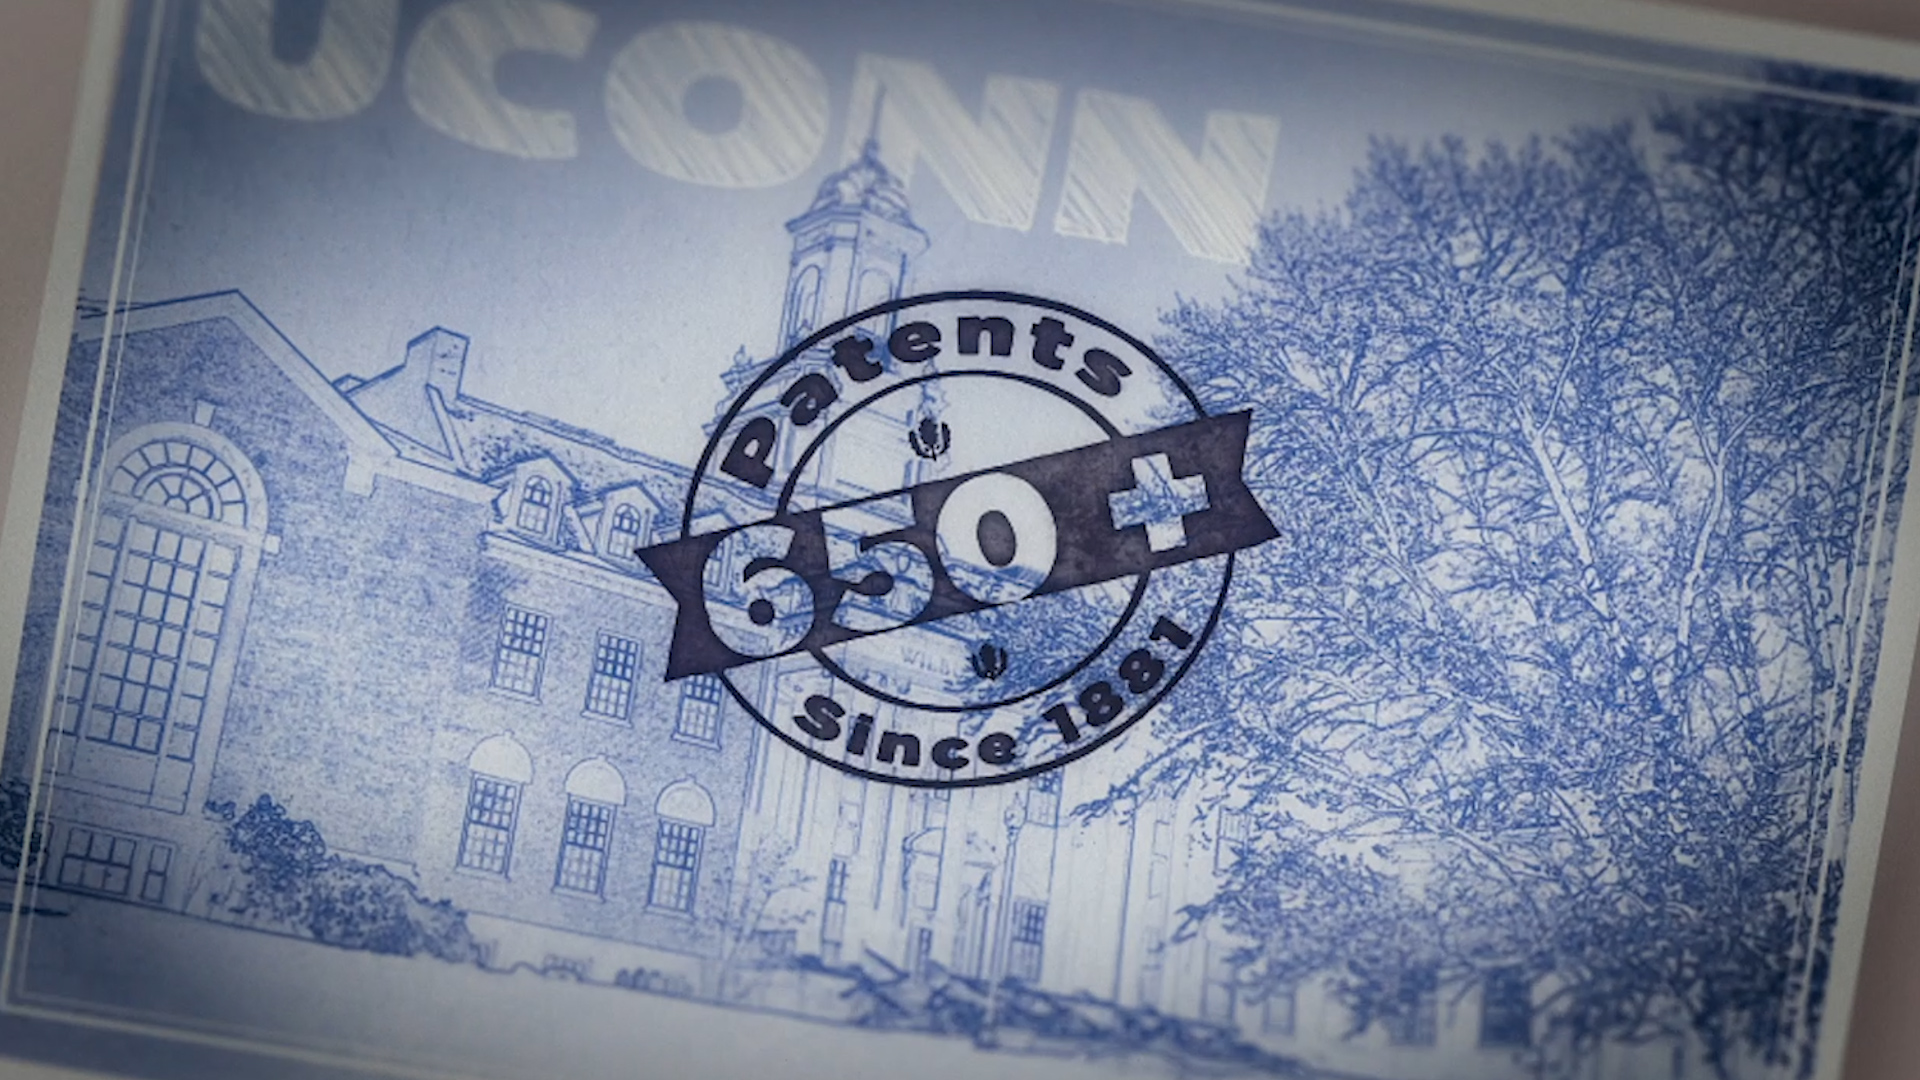 A graphic that touts UConn's inventions.